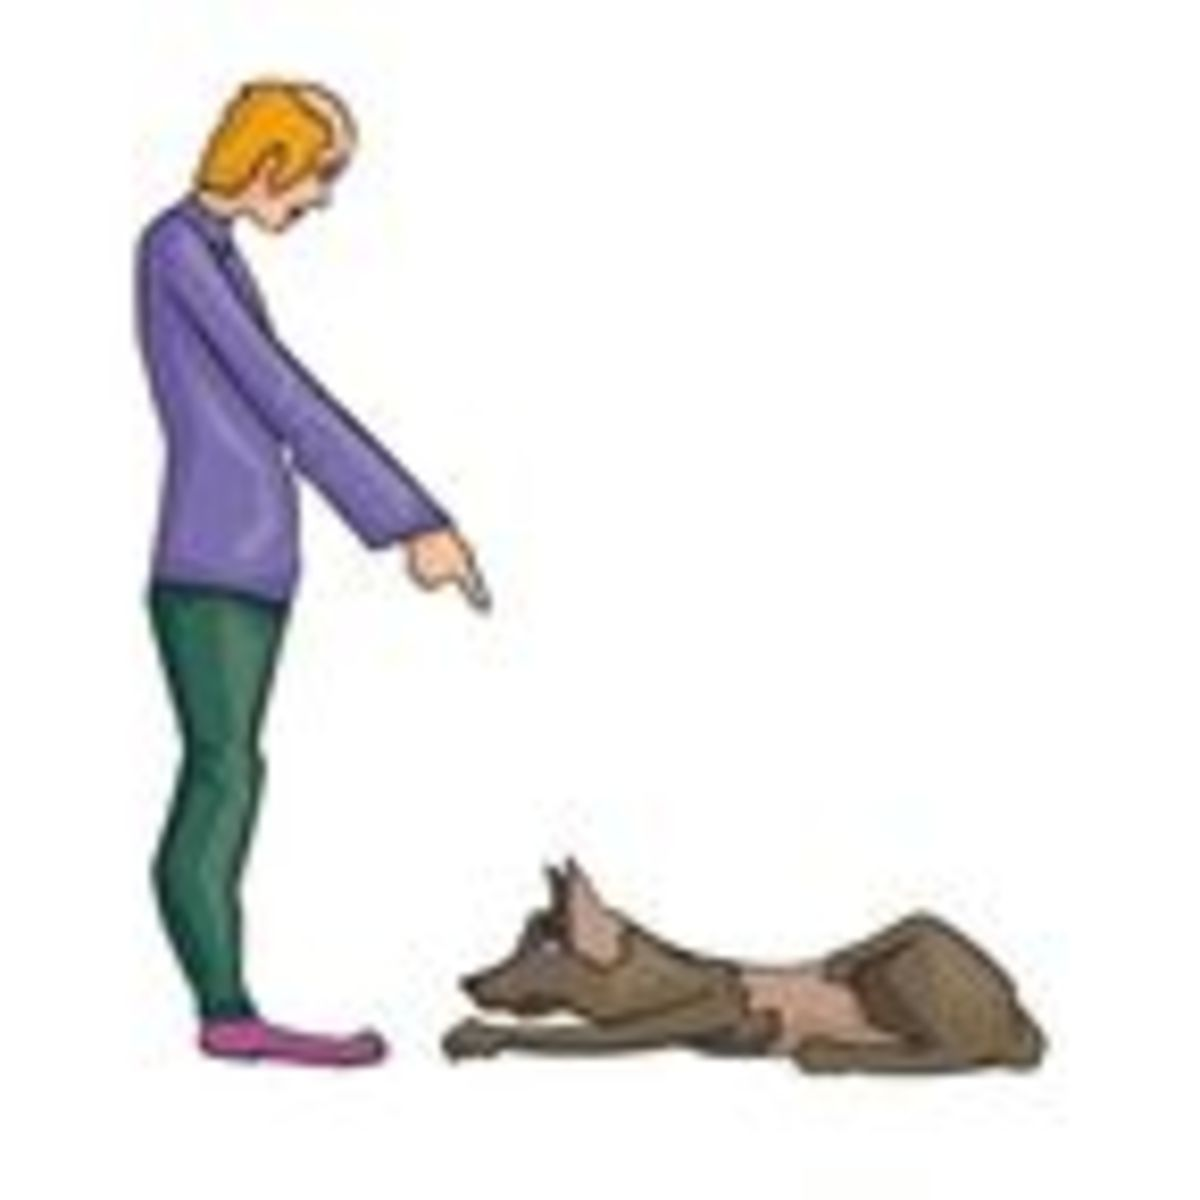 Person handing a treat to a dog clipart clipart royalty free library Who Gives a Dog a Command and How It Is Given Matters ... clipart royalty free library